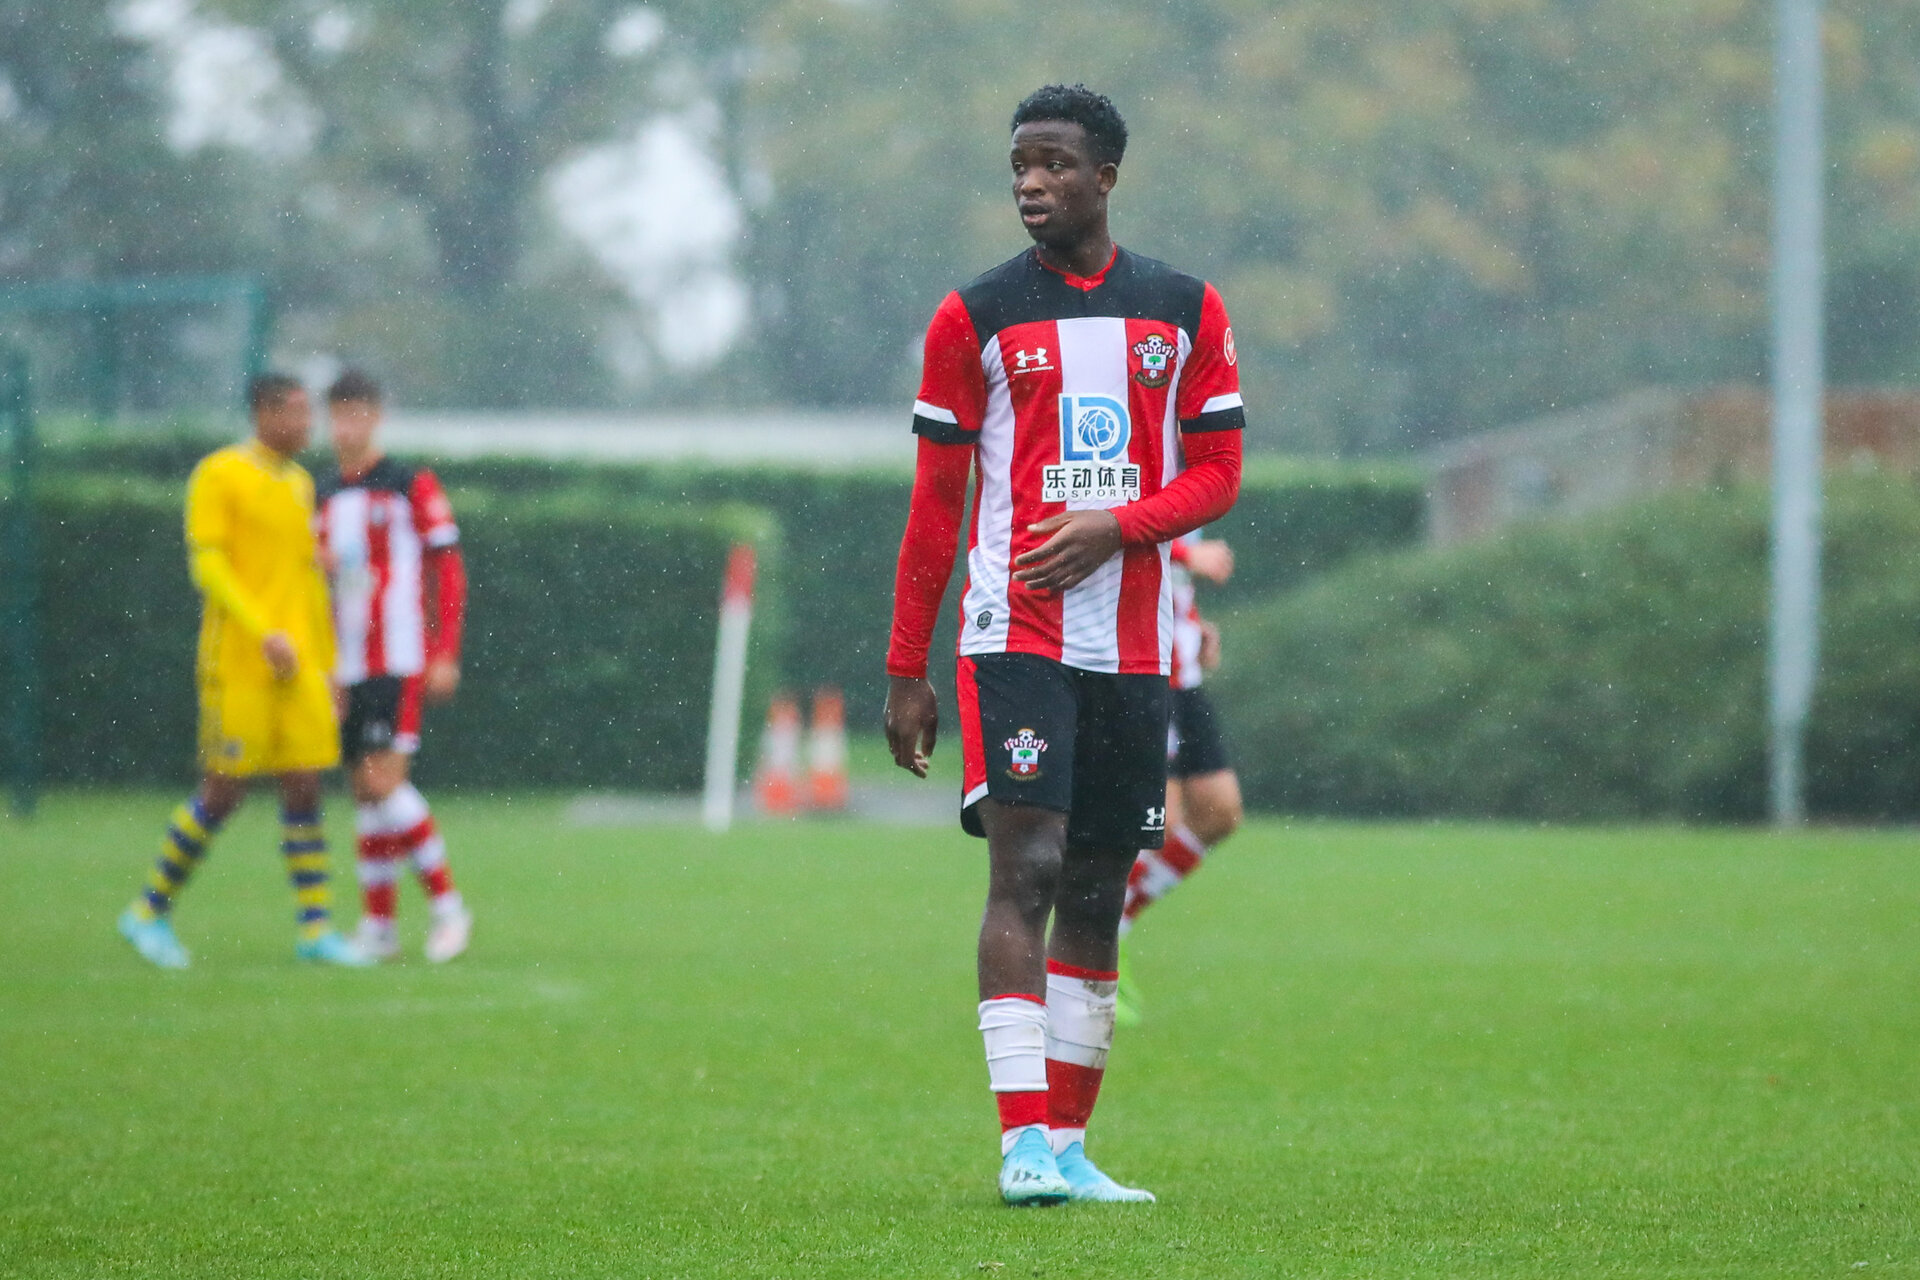 SOUTHAMPTON, ENGLAND - OCTOBER 26: Roland Idowu of Southampton FC during the Under 18s Premier League Cup match between Southampton FC and Swansea City at the Staplewood Campus on October 26, 2019 in Southampton, England